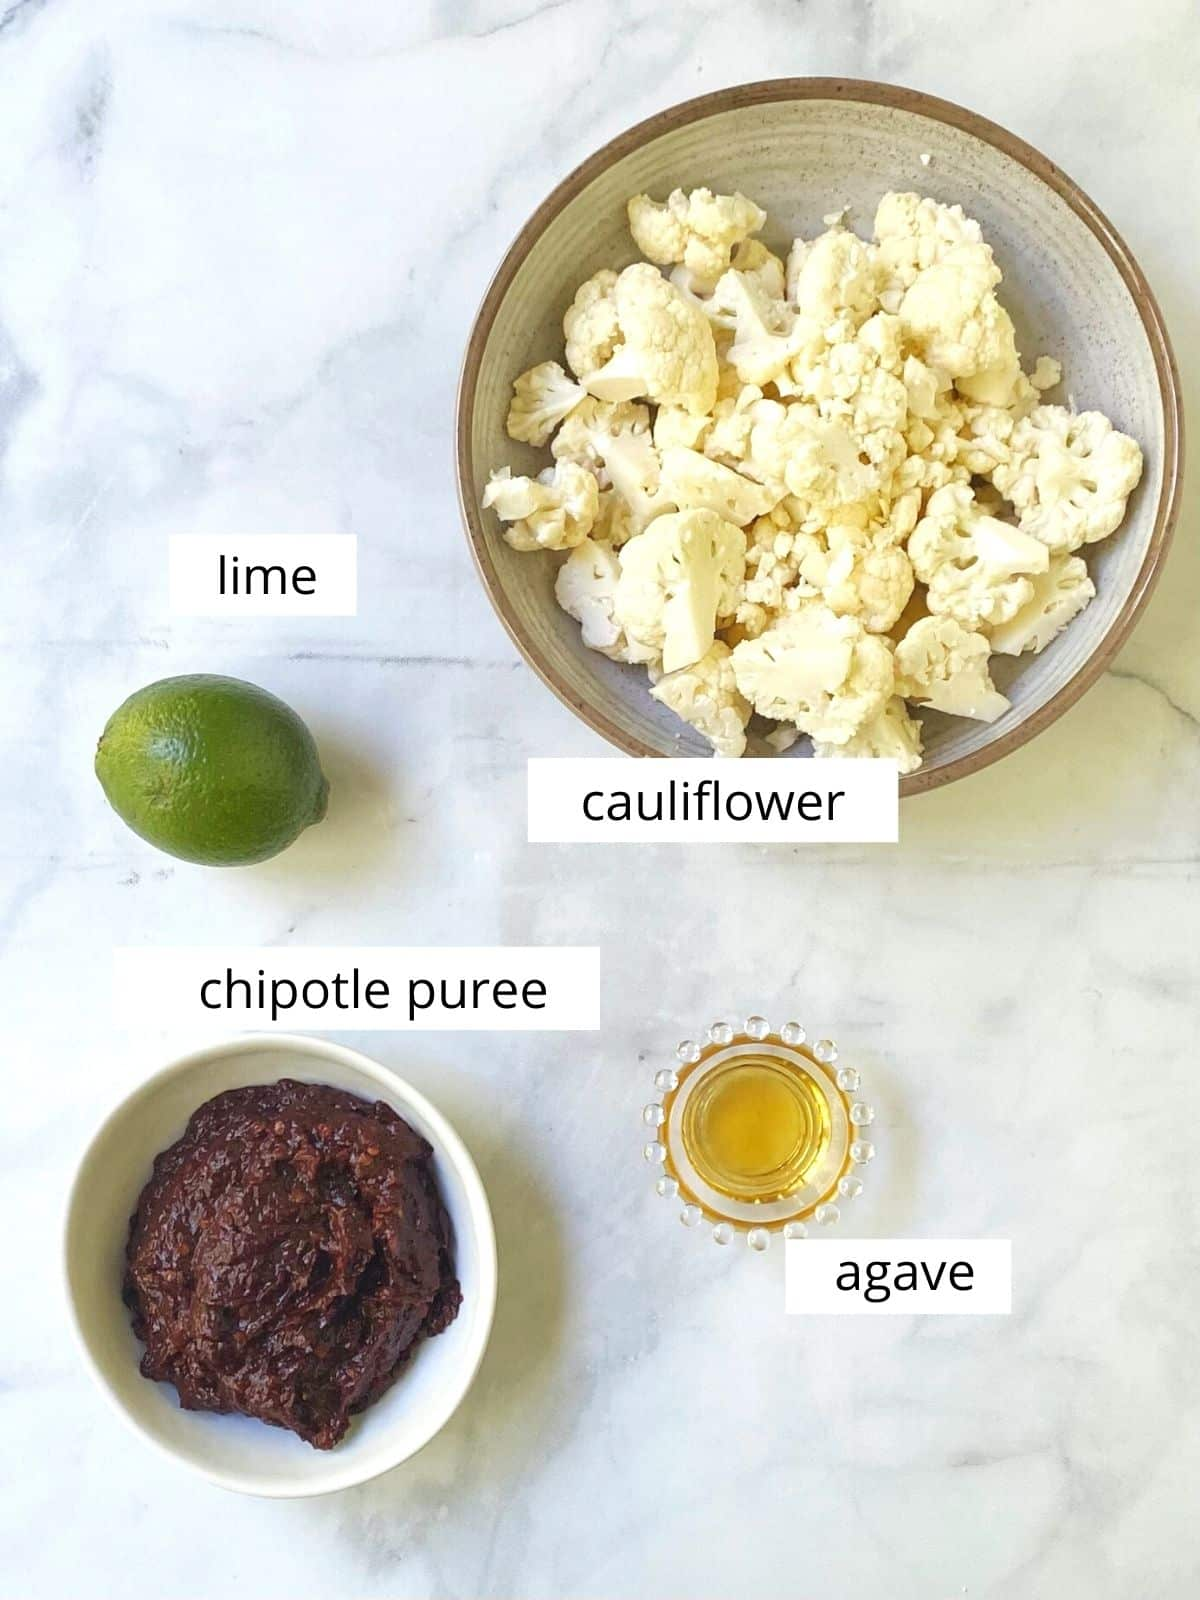 array of ingredients - cauliflower florets, lime, agave, and chipotle puree